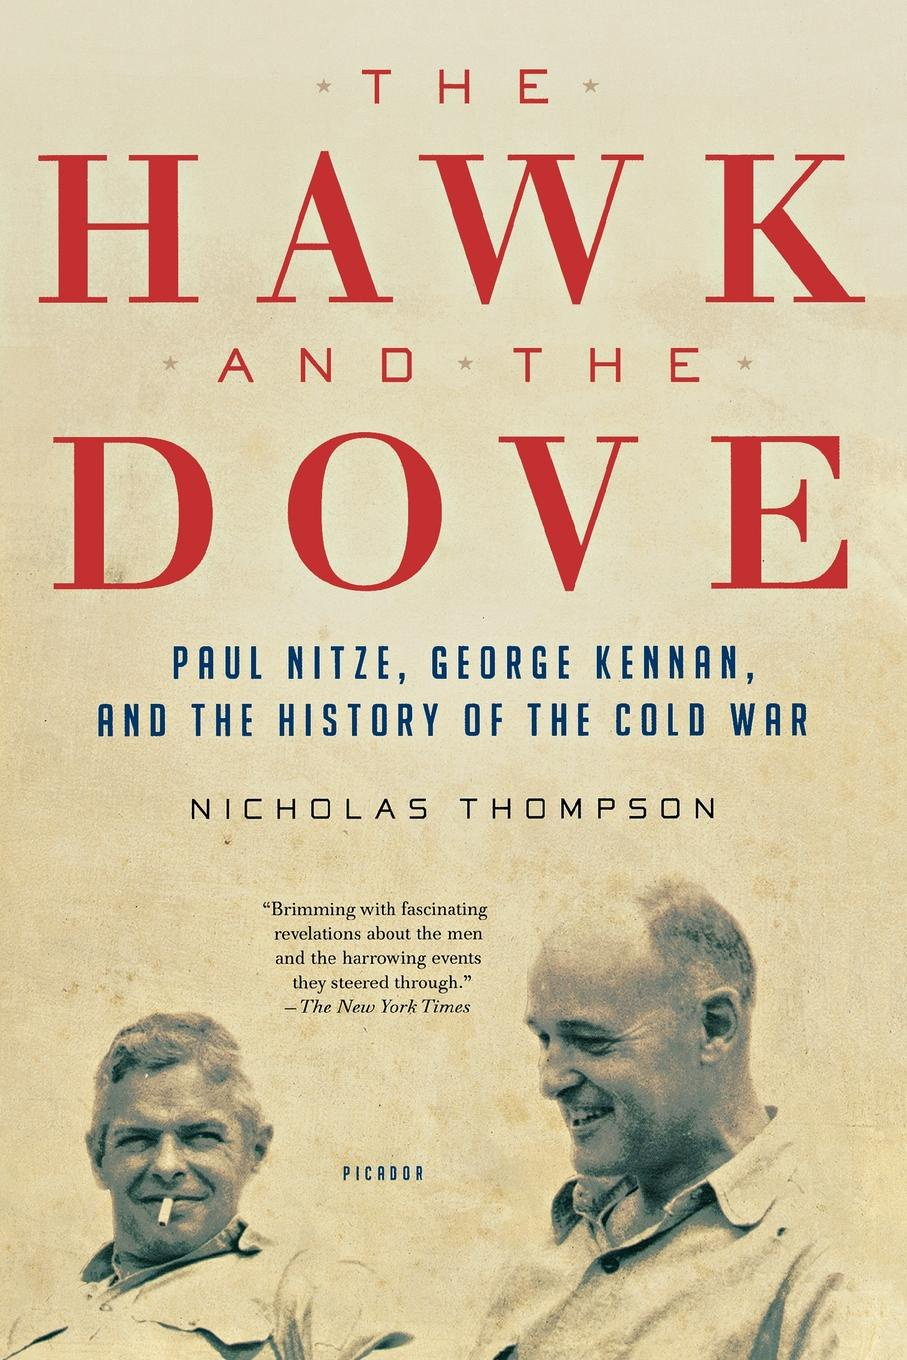 Nicholas Thompson The Hawk and the Dove. Paul Nitze, George Kennan, and the History of the Cold War exterminism and cold war